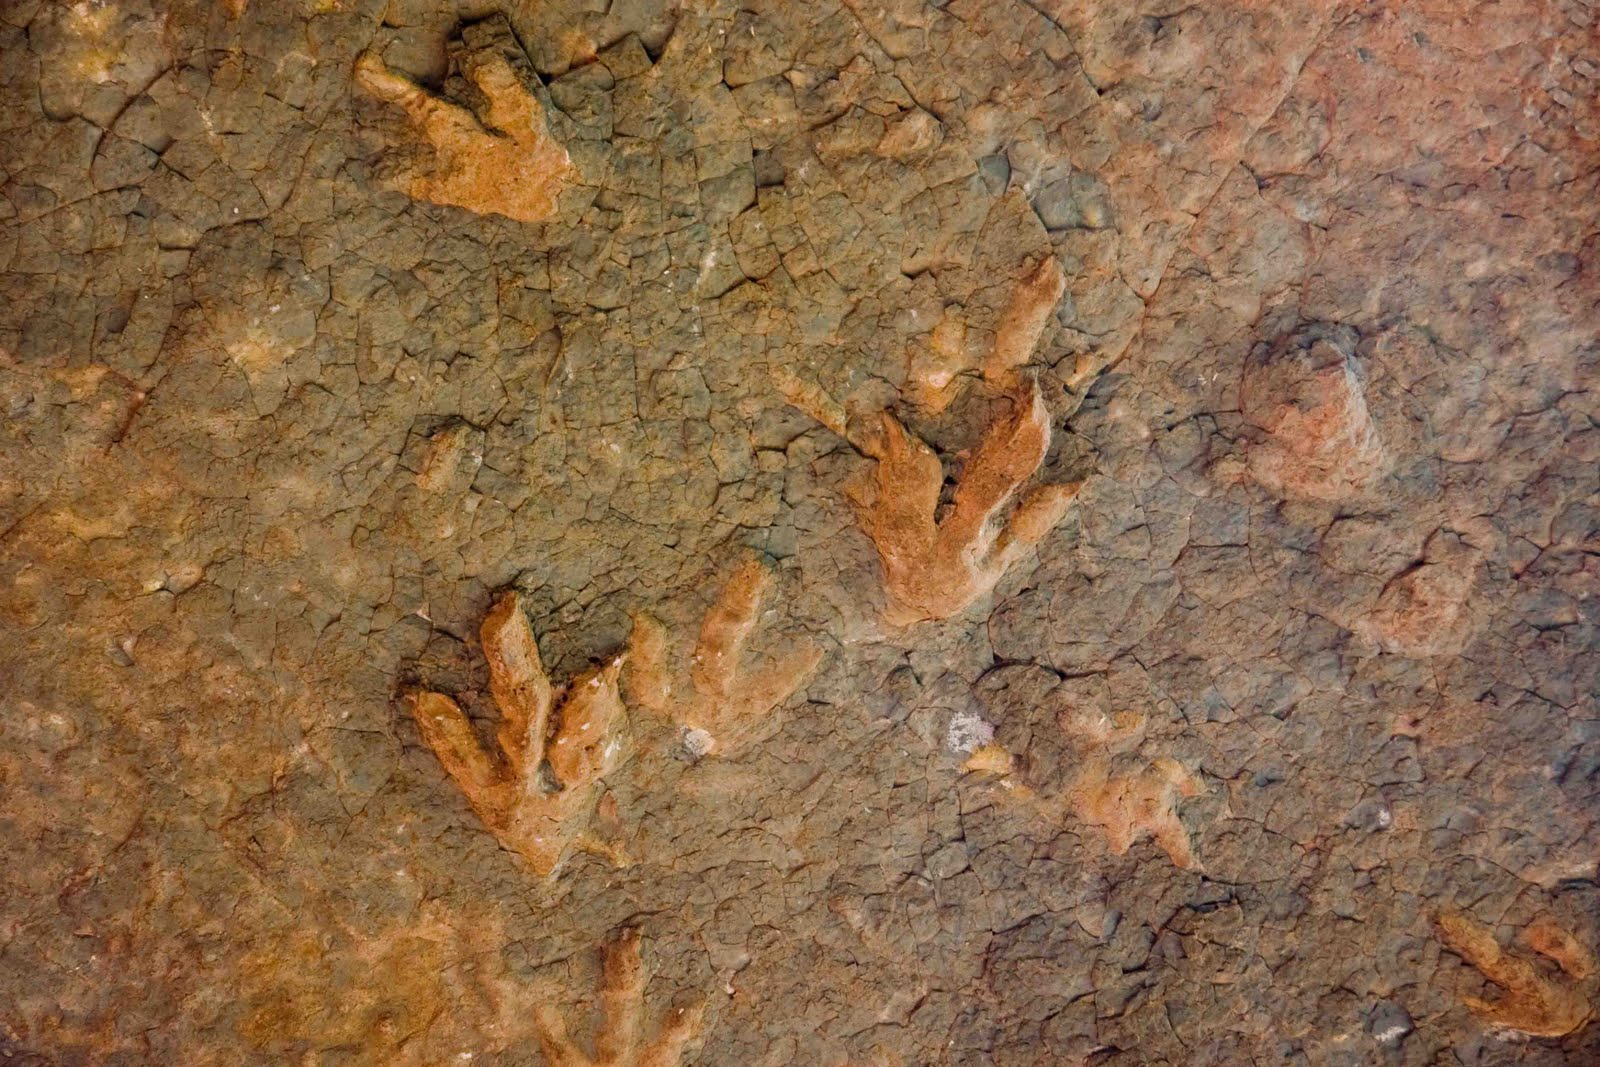 Dinosaur Footprints in Lesotho photo by Gerald Allan Davie